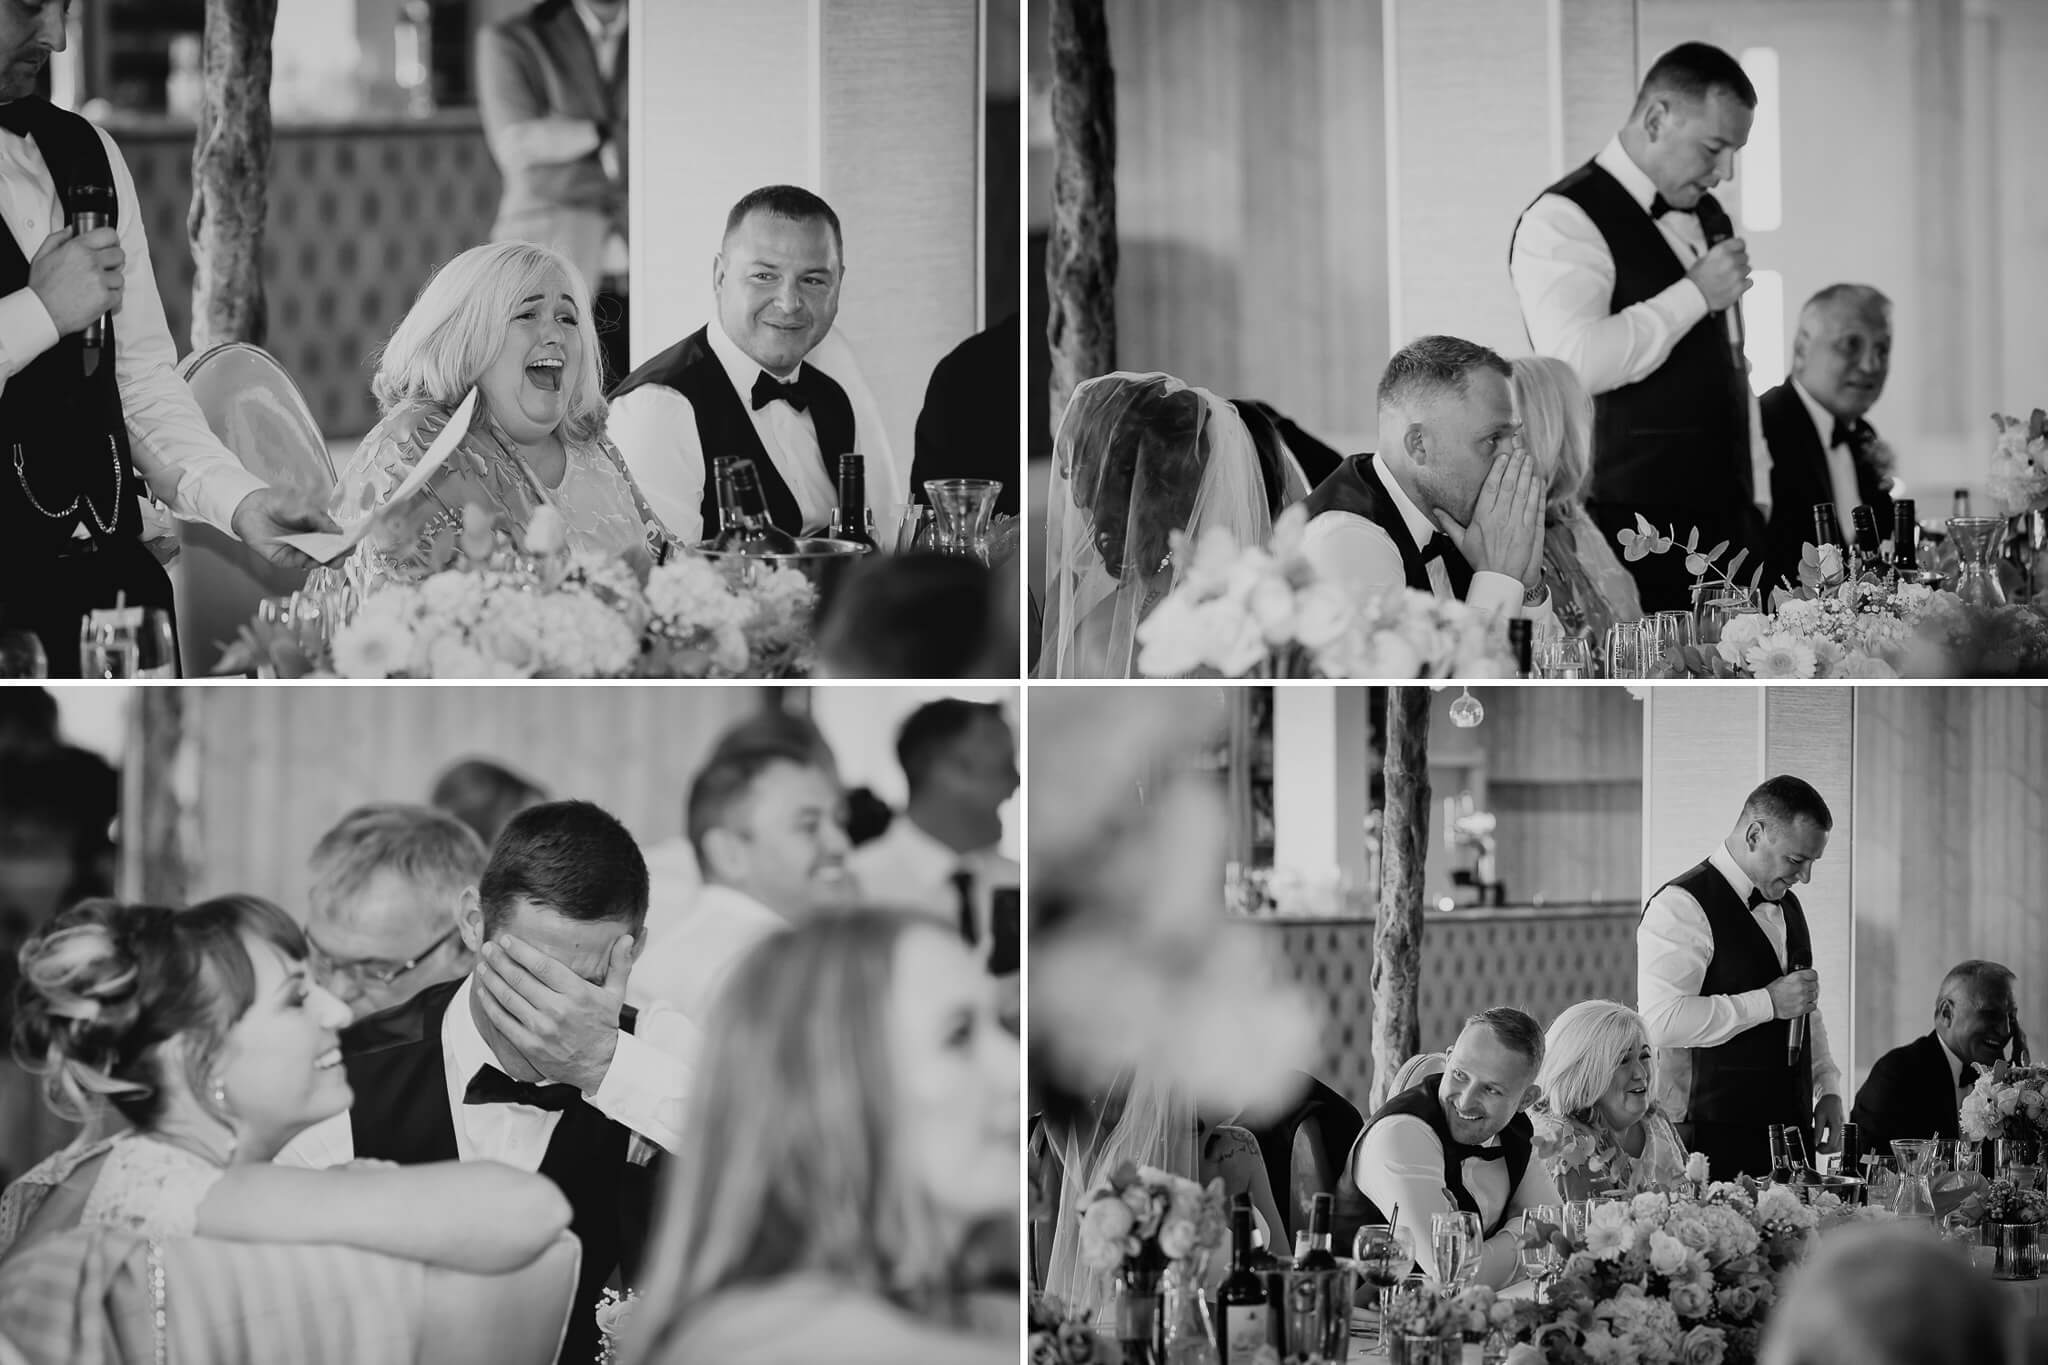 shankly-hotel-wedding-photographer-liverpool-stanbury-photography-026